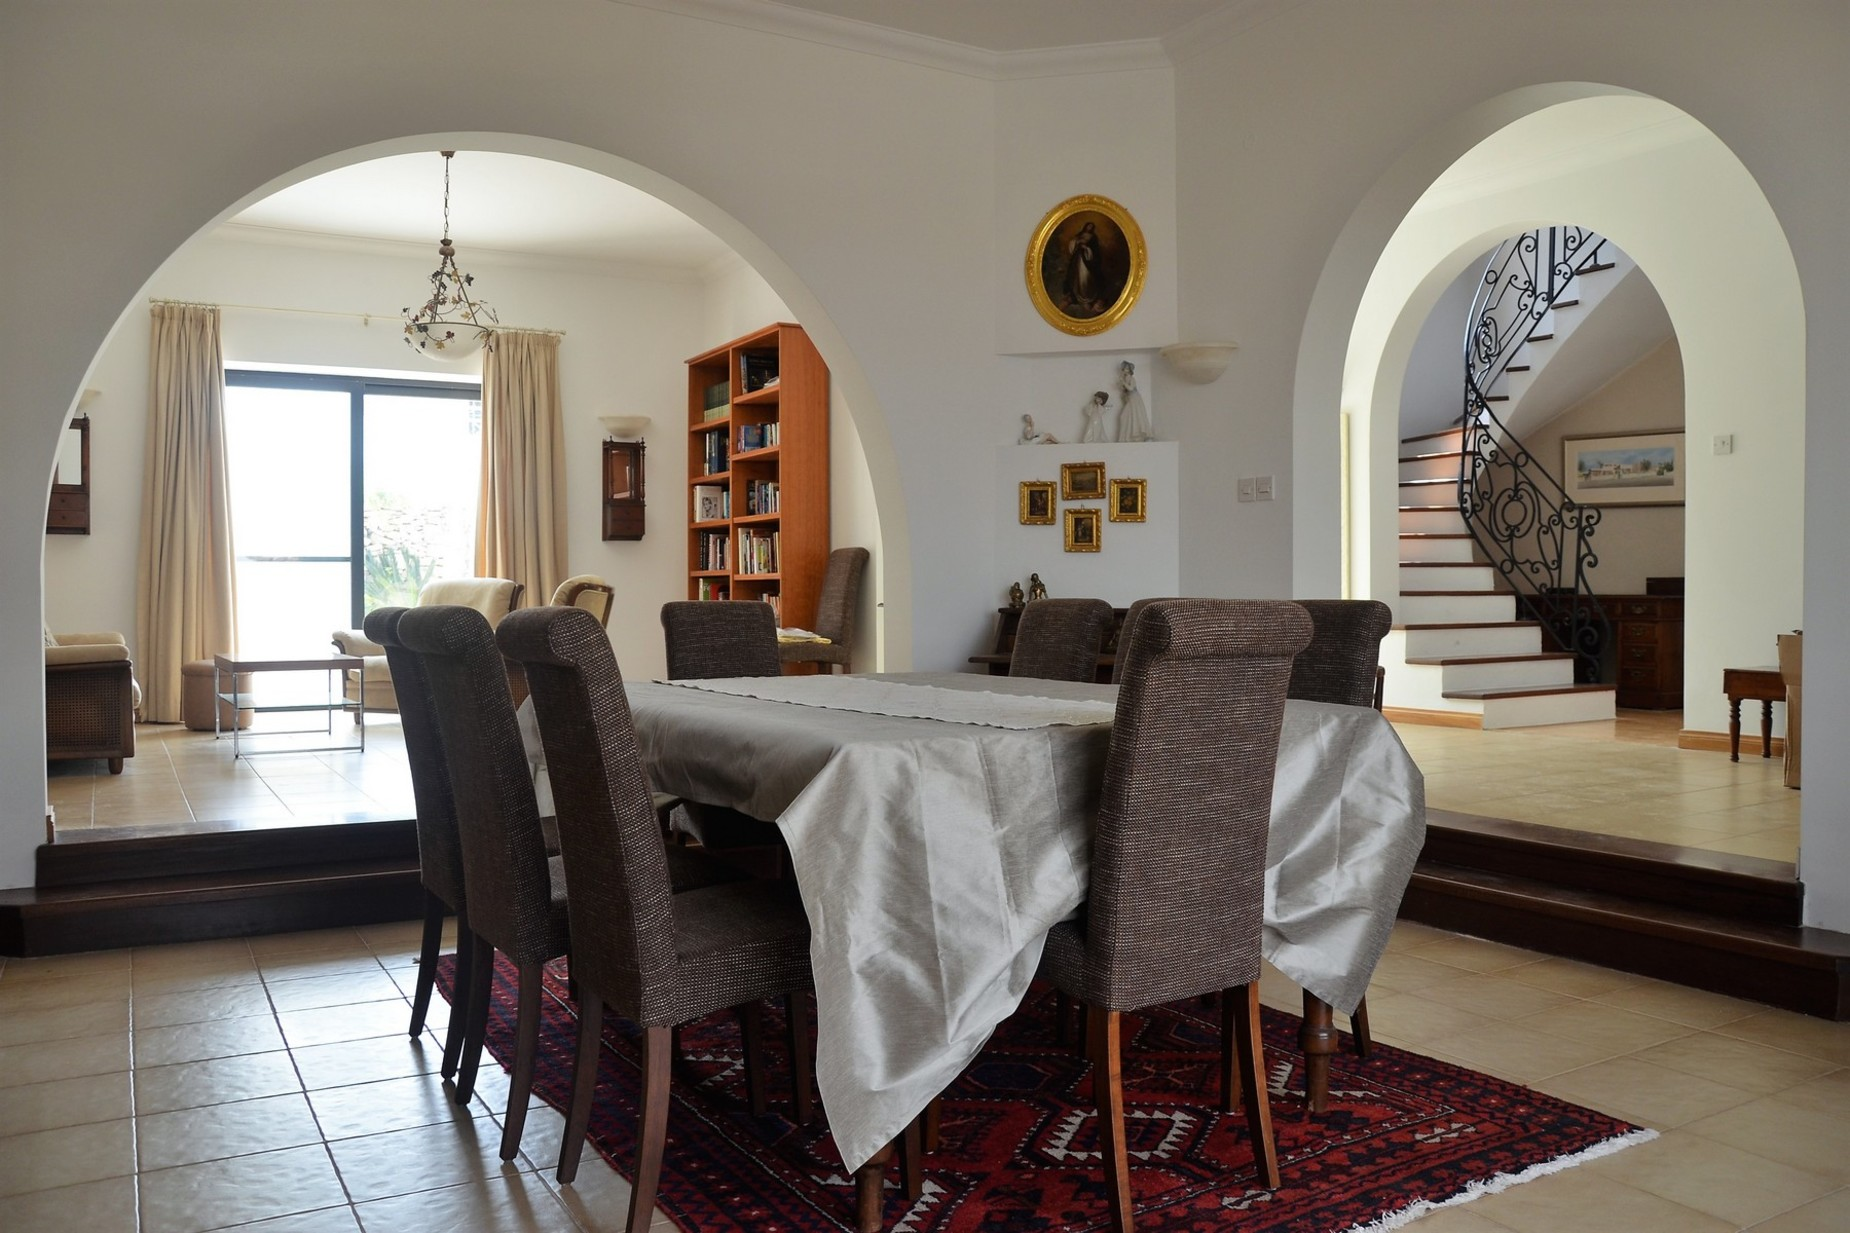 4 bed Villa For Rent in Madliena, Madliena - thumb 4